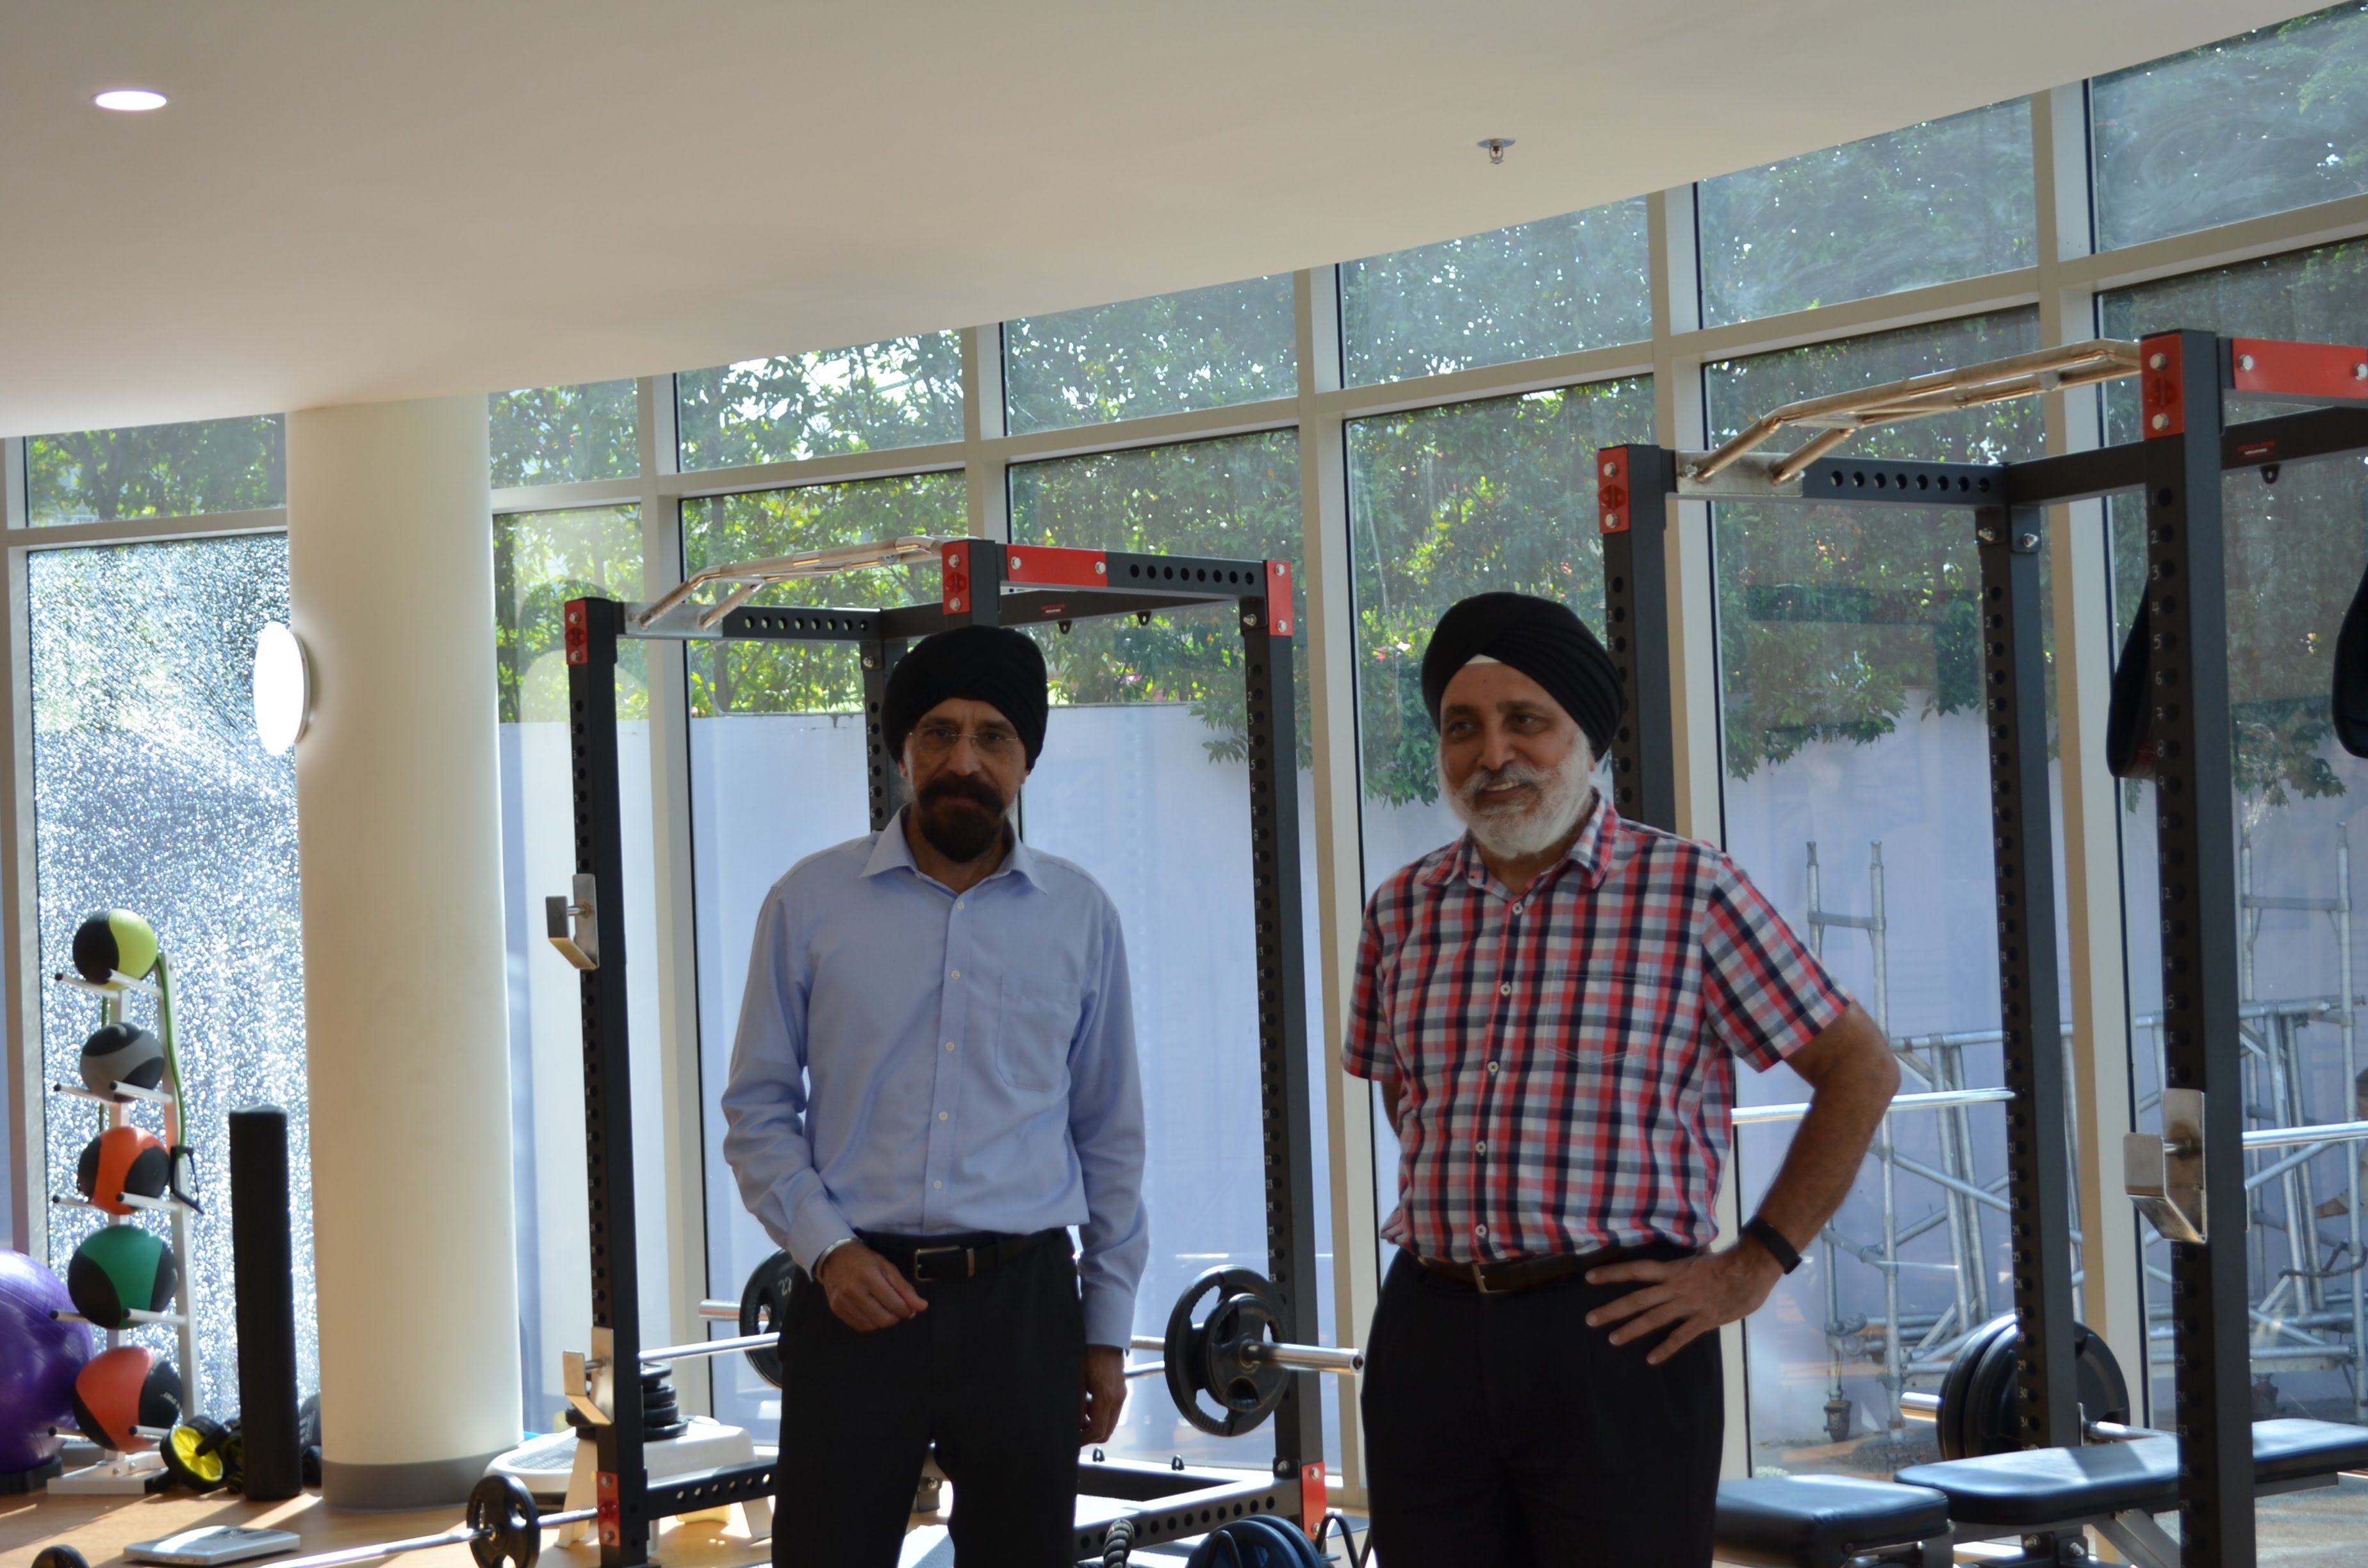 Mohinder Singh (left) is the president of the SKA. Seen here with General Manager Albel Singh in the SKA gym.